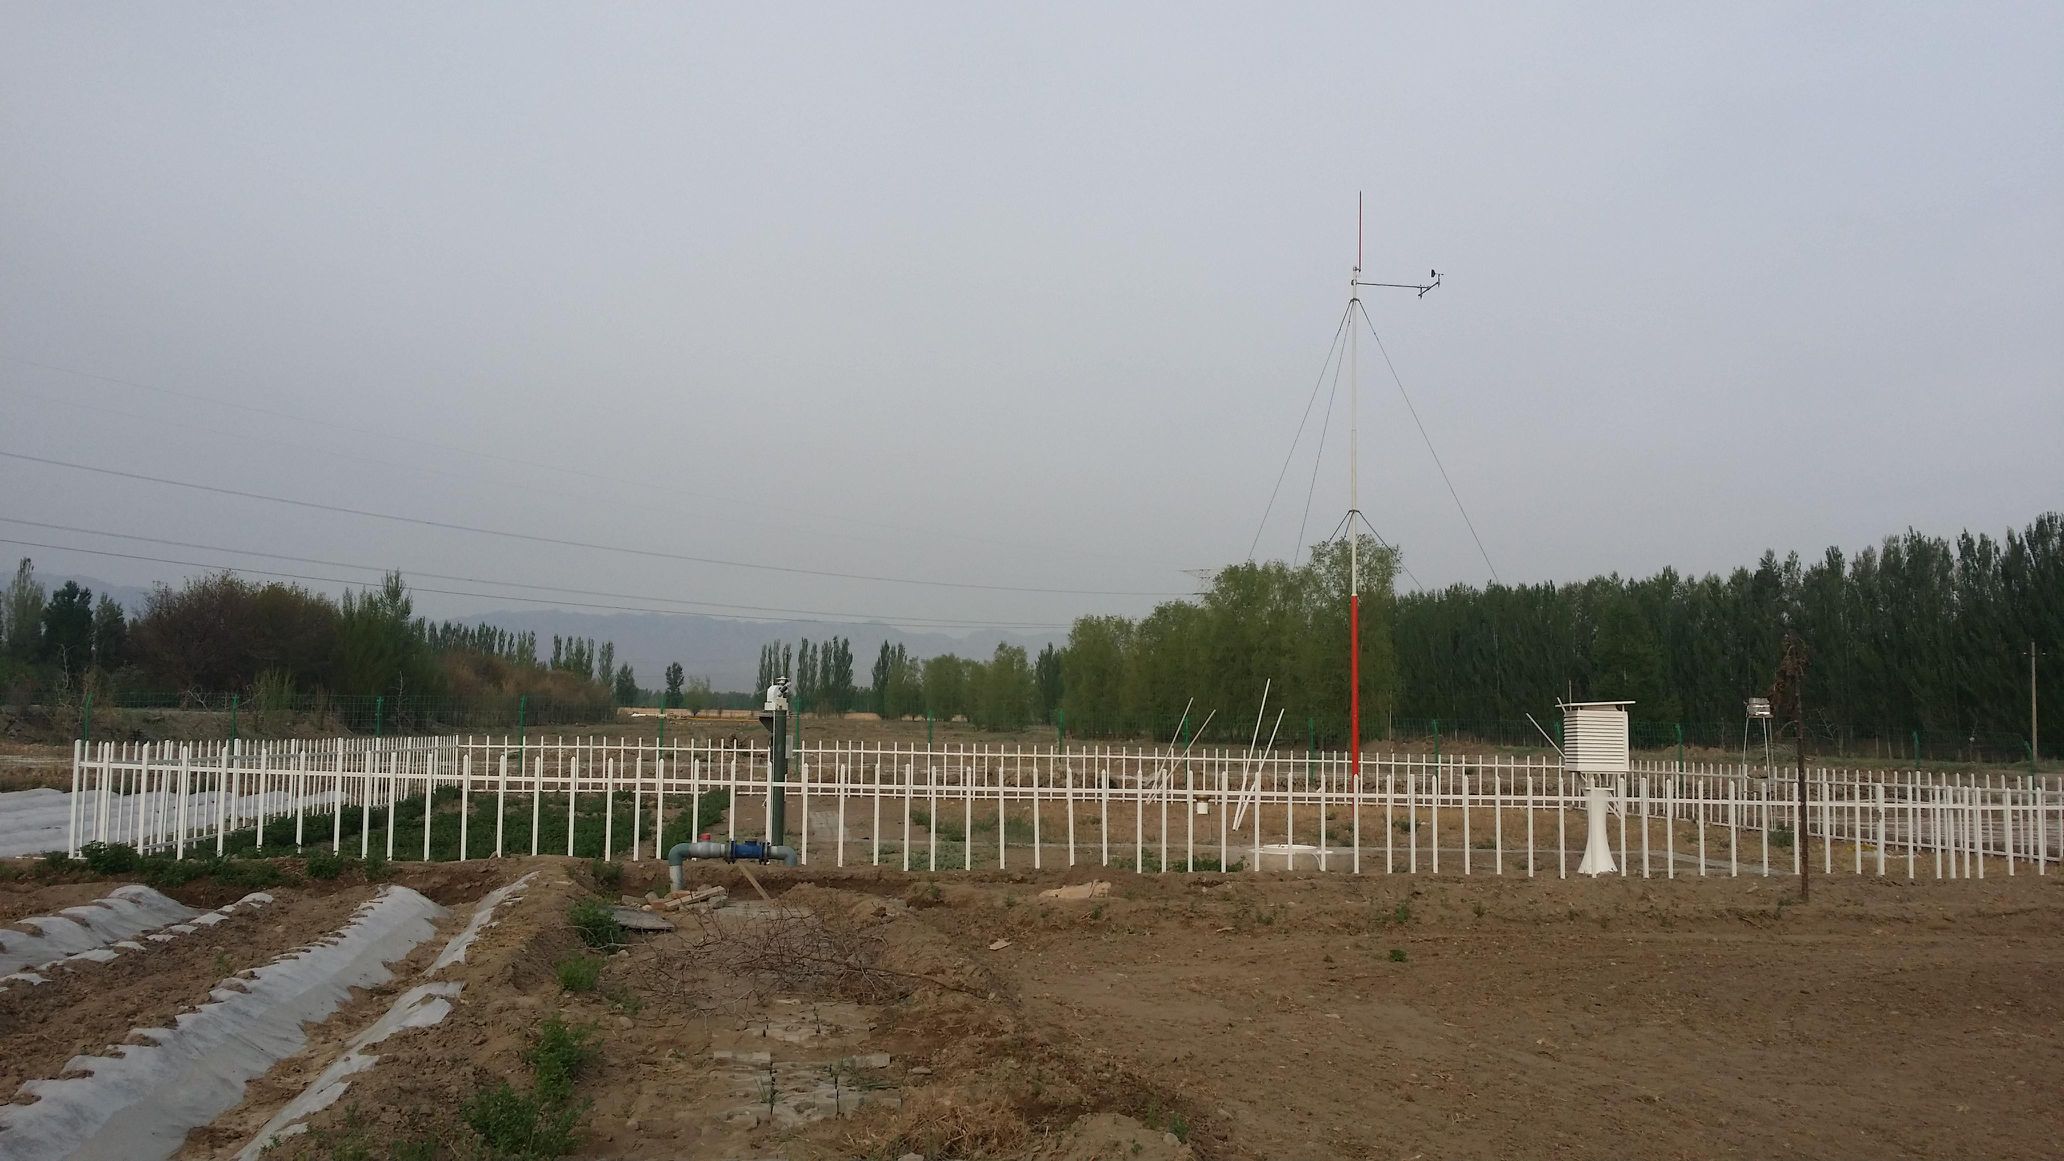 Qilian Mountains integrated observatory network: Dataset of the Heihe River Basin integrated observatory network (automatic weather station of Heihe remote sensing station, 2018)